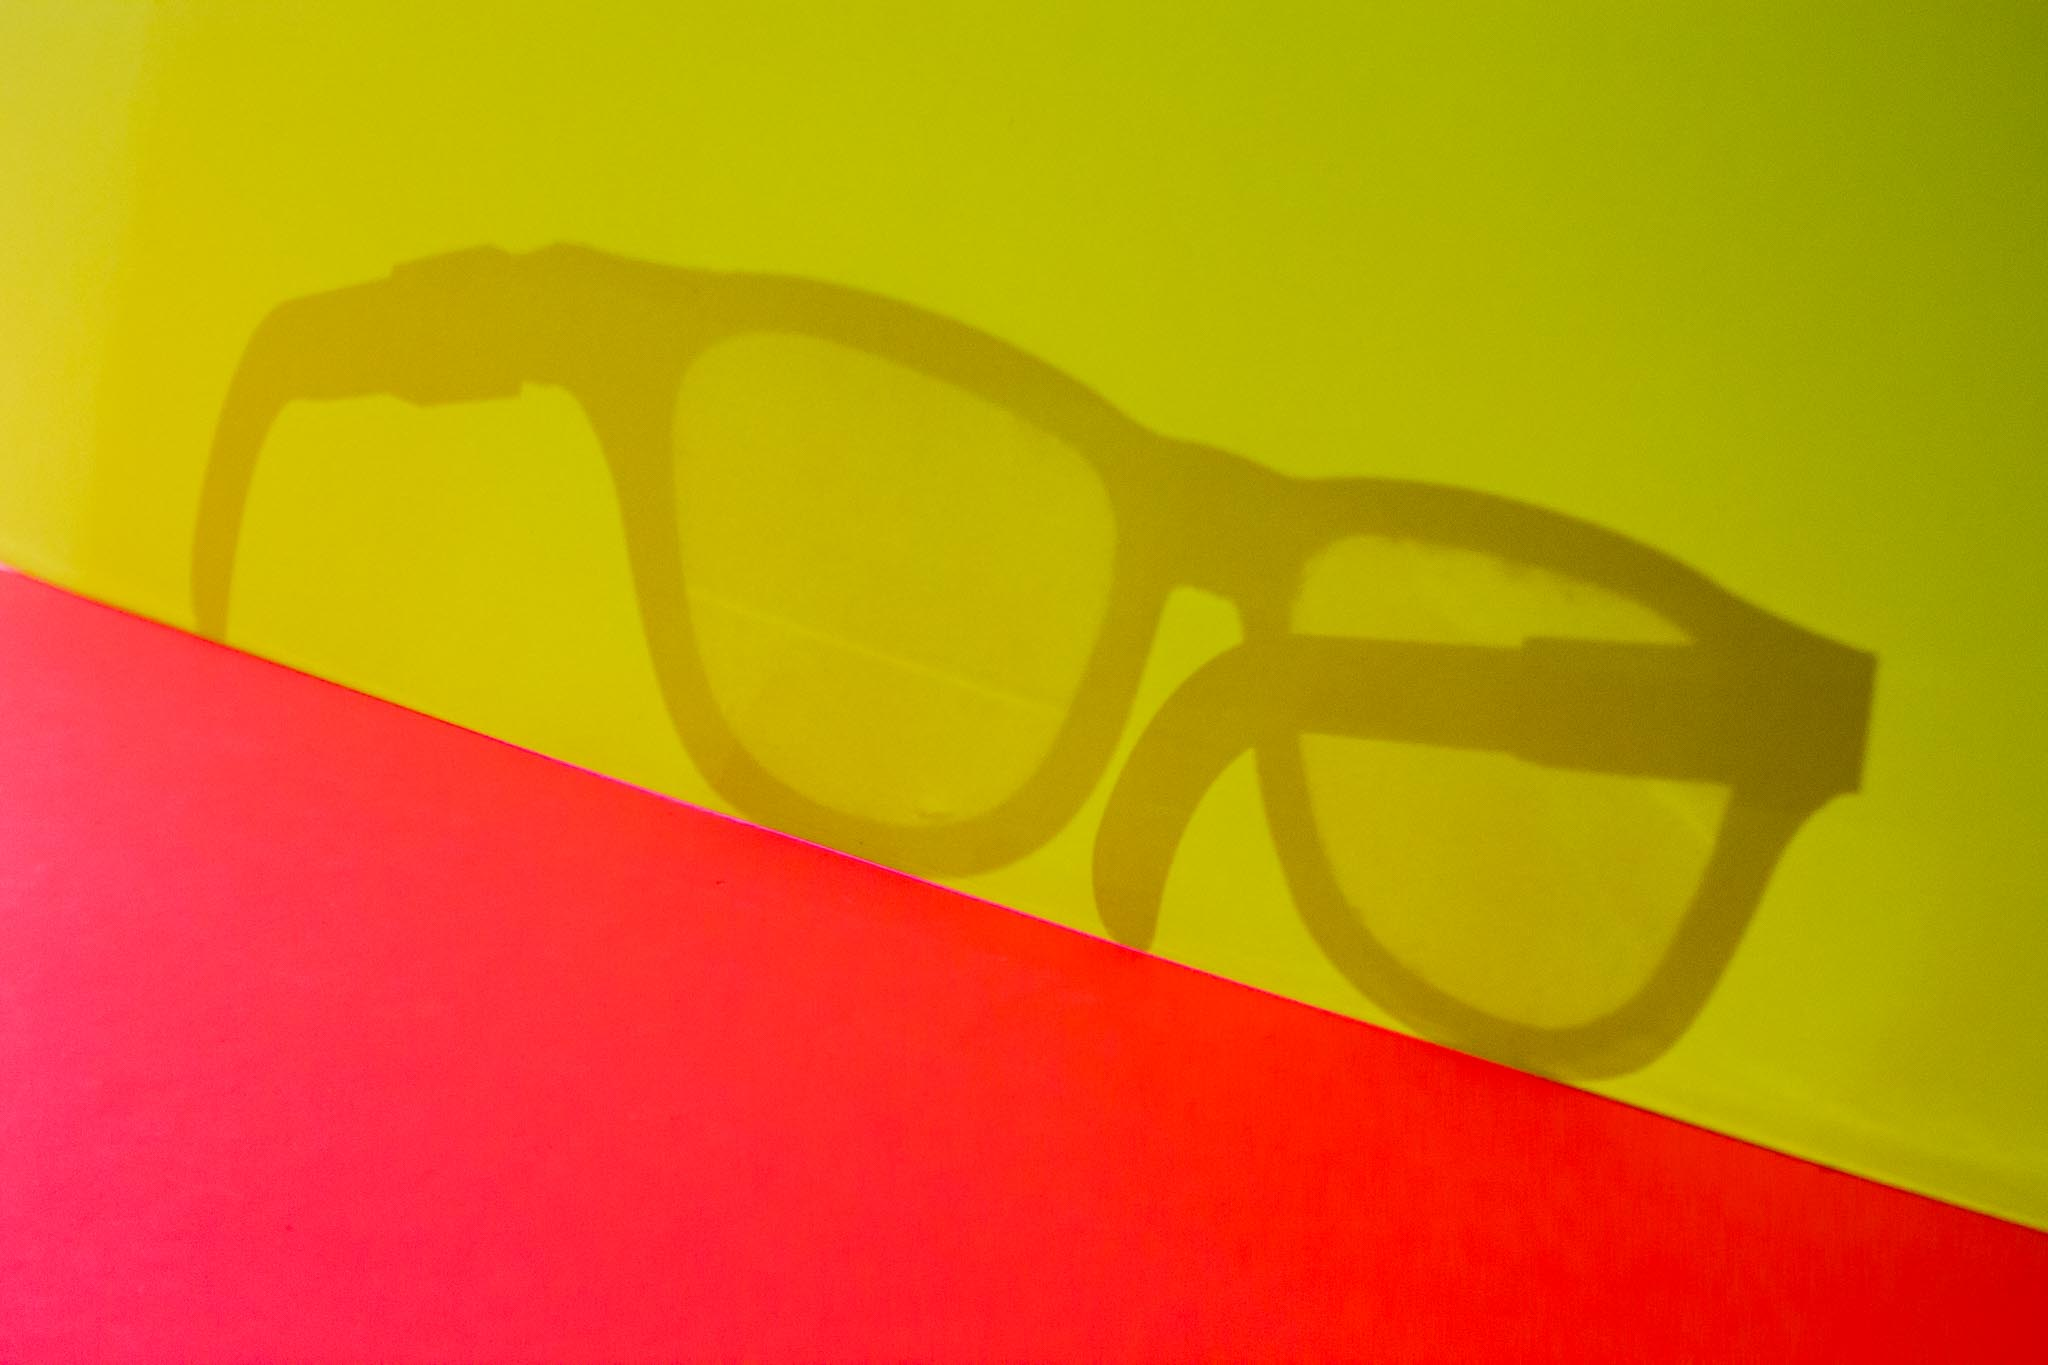 Trippy glasses … or how you can rediscover light